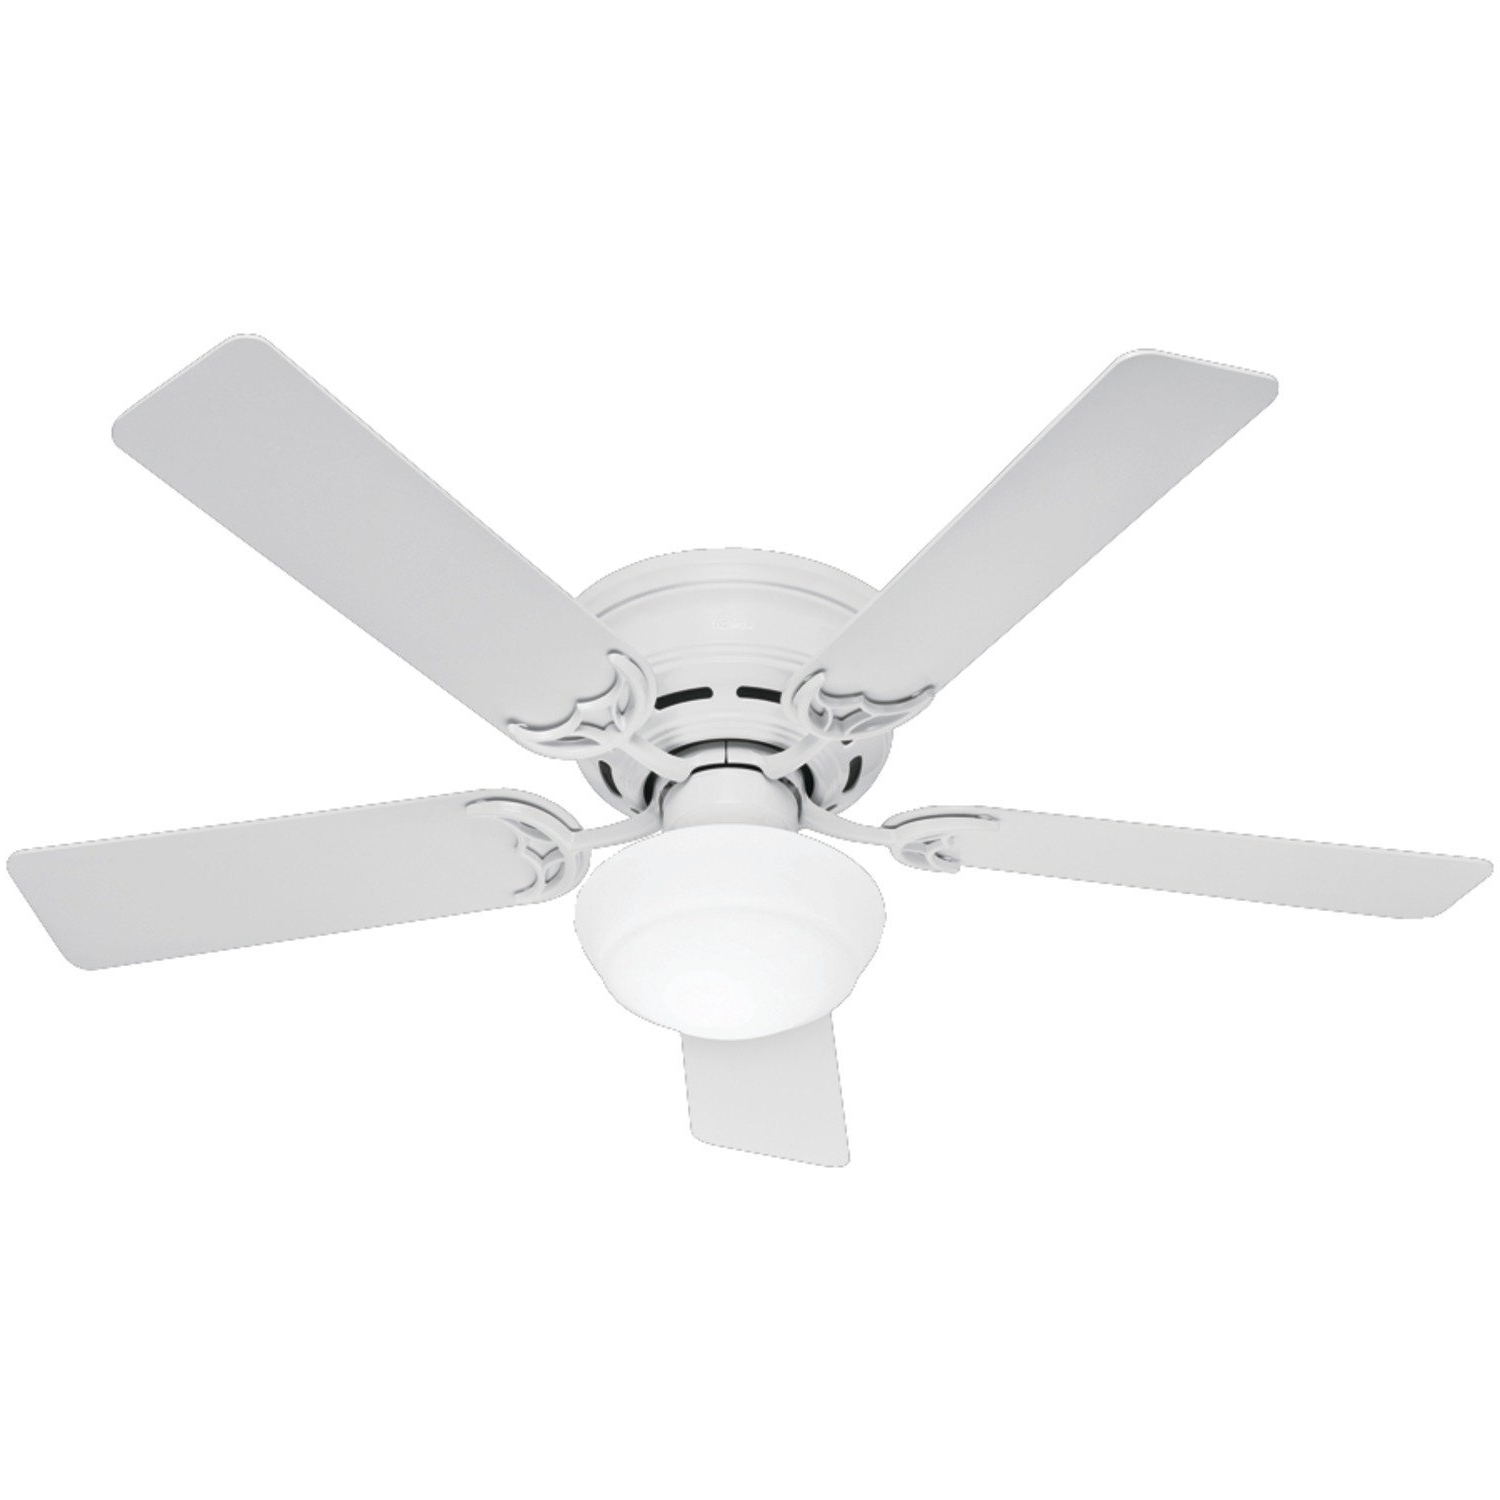 Decor On The Line Regarding Popular Hunter Outdoor Ceiling Fans With White Lights (View 14 of 20)